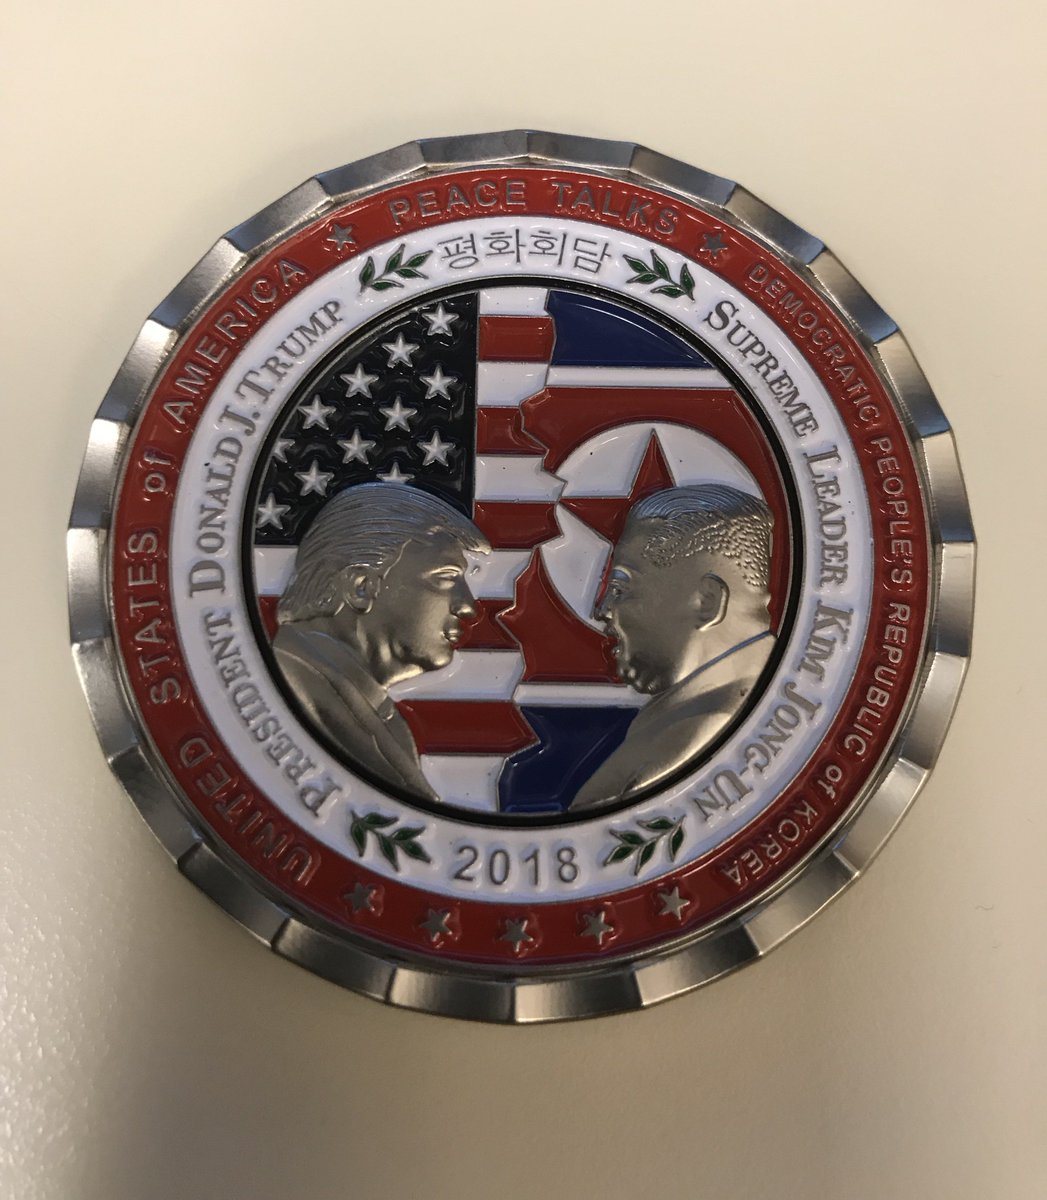 There's now a White House Military Office coin for the upcoming Trump Kim Jong Un summit. The North Korean dictator is referred to as 'Supreme Leader Kim Jong Un.'